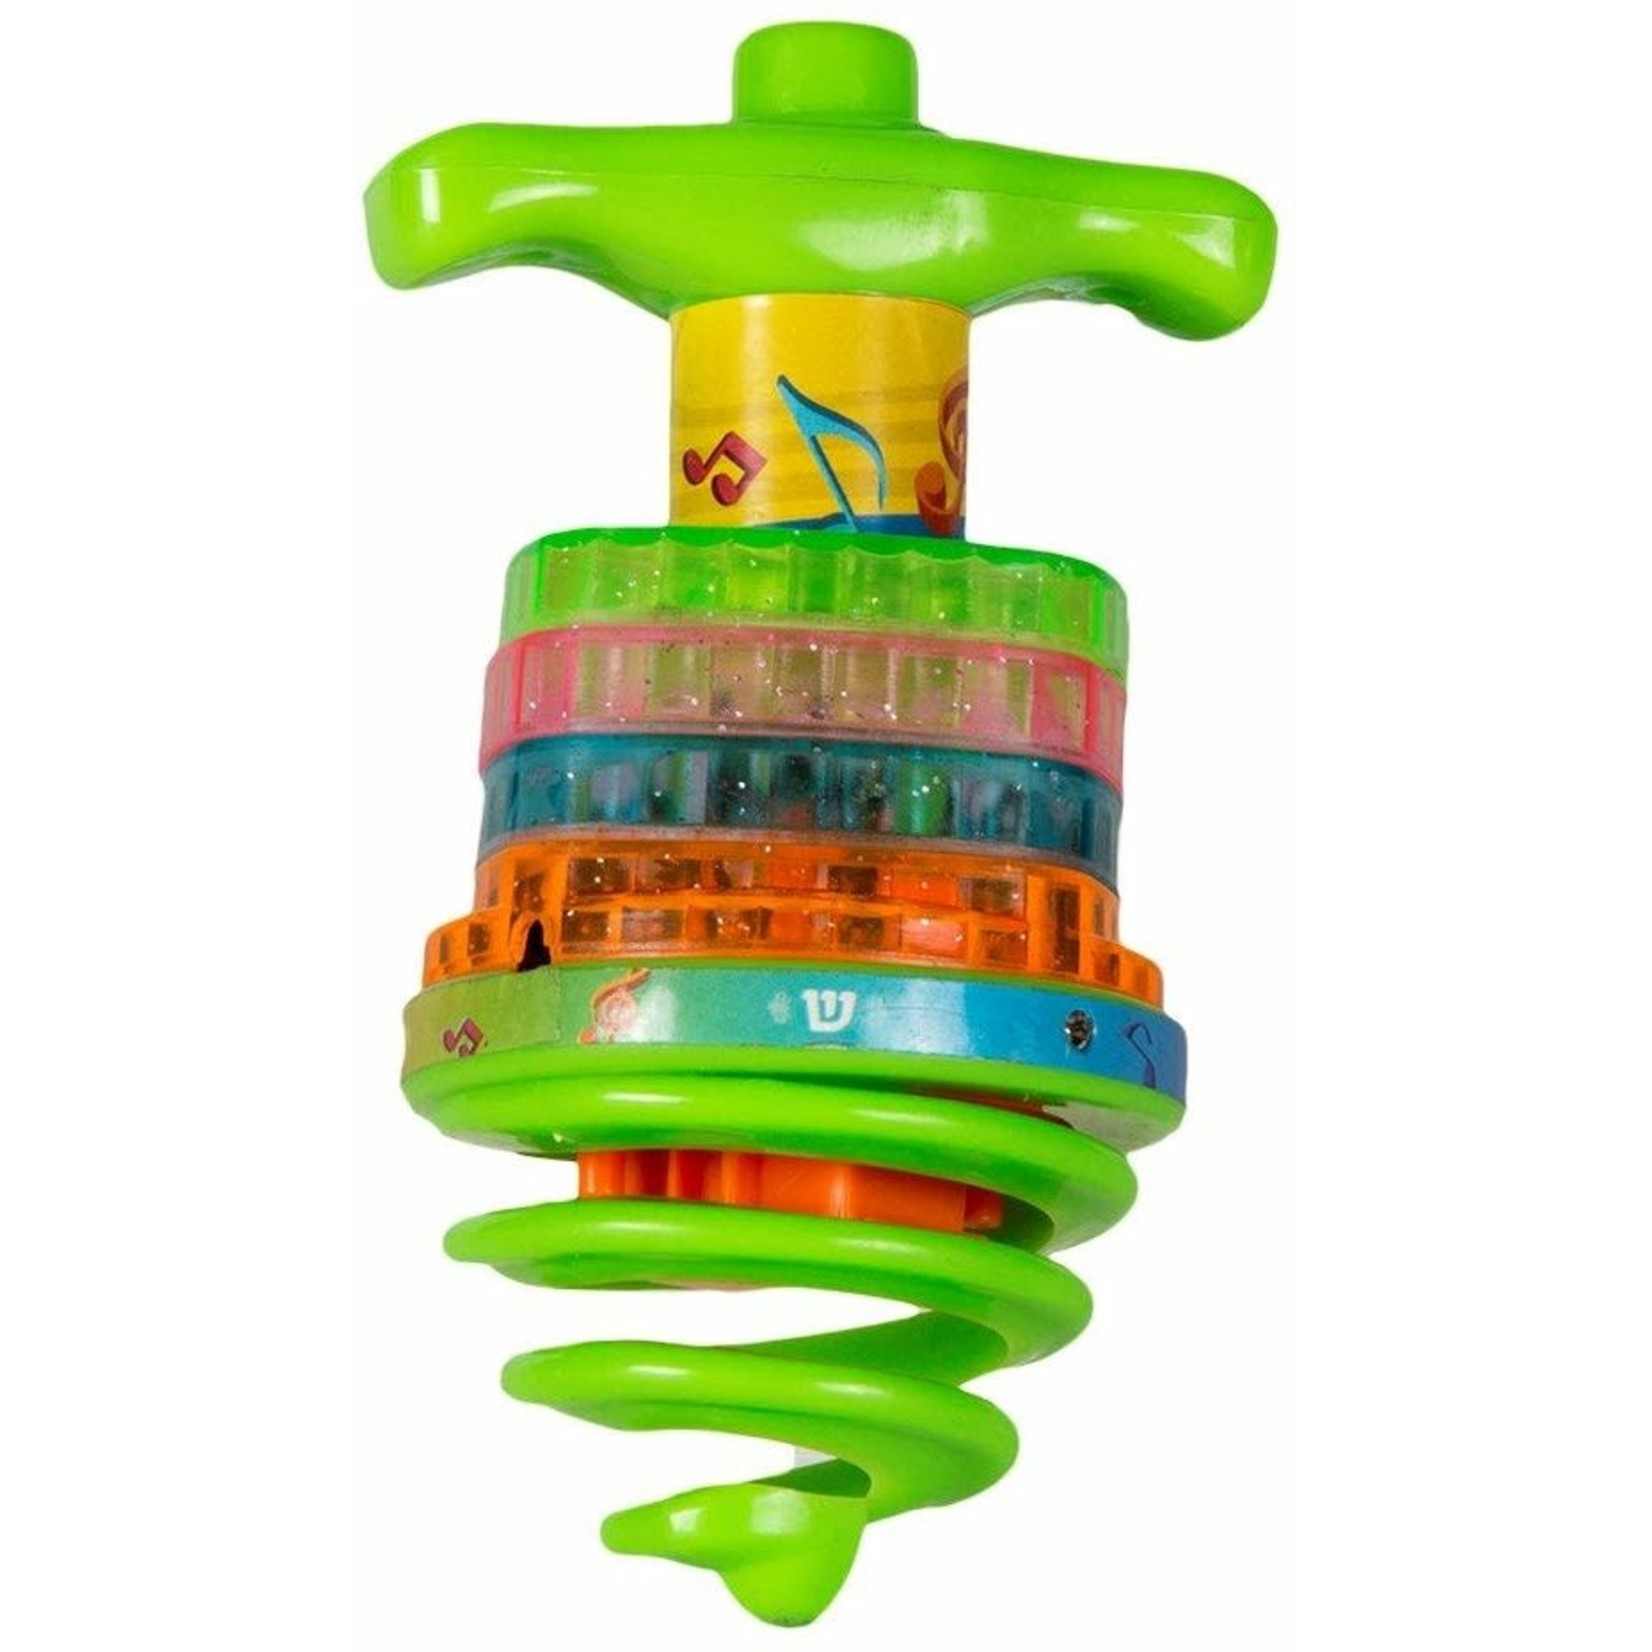 12 x Bouncing Musical Dreidel - Square